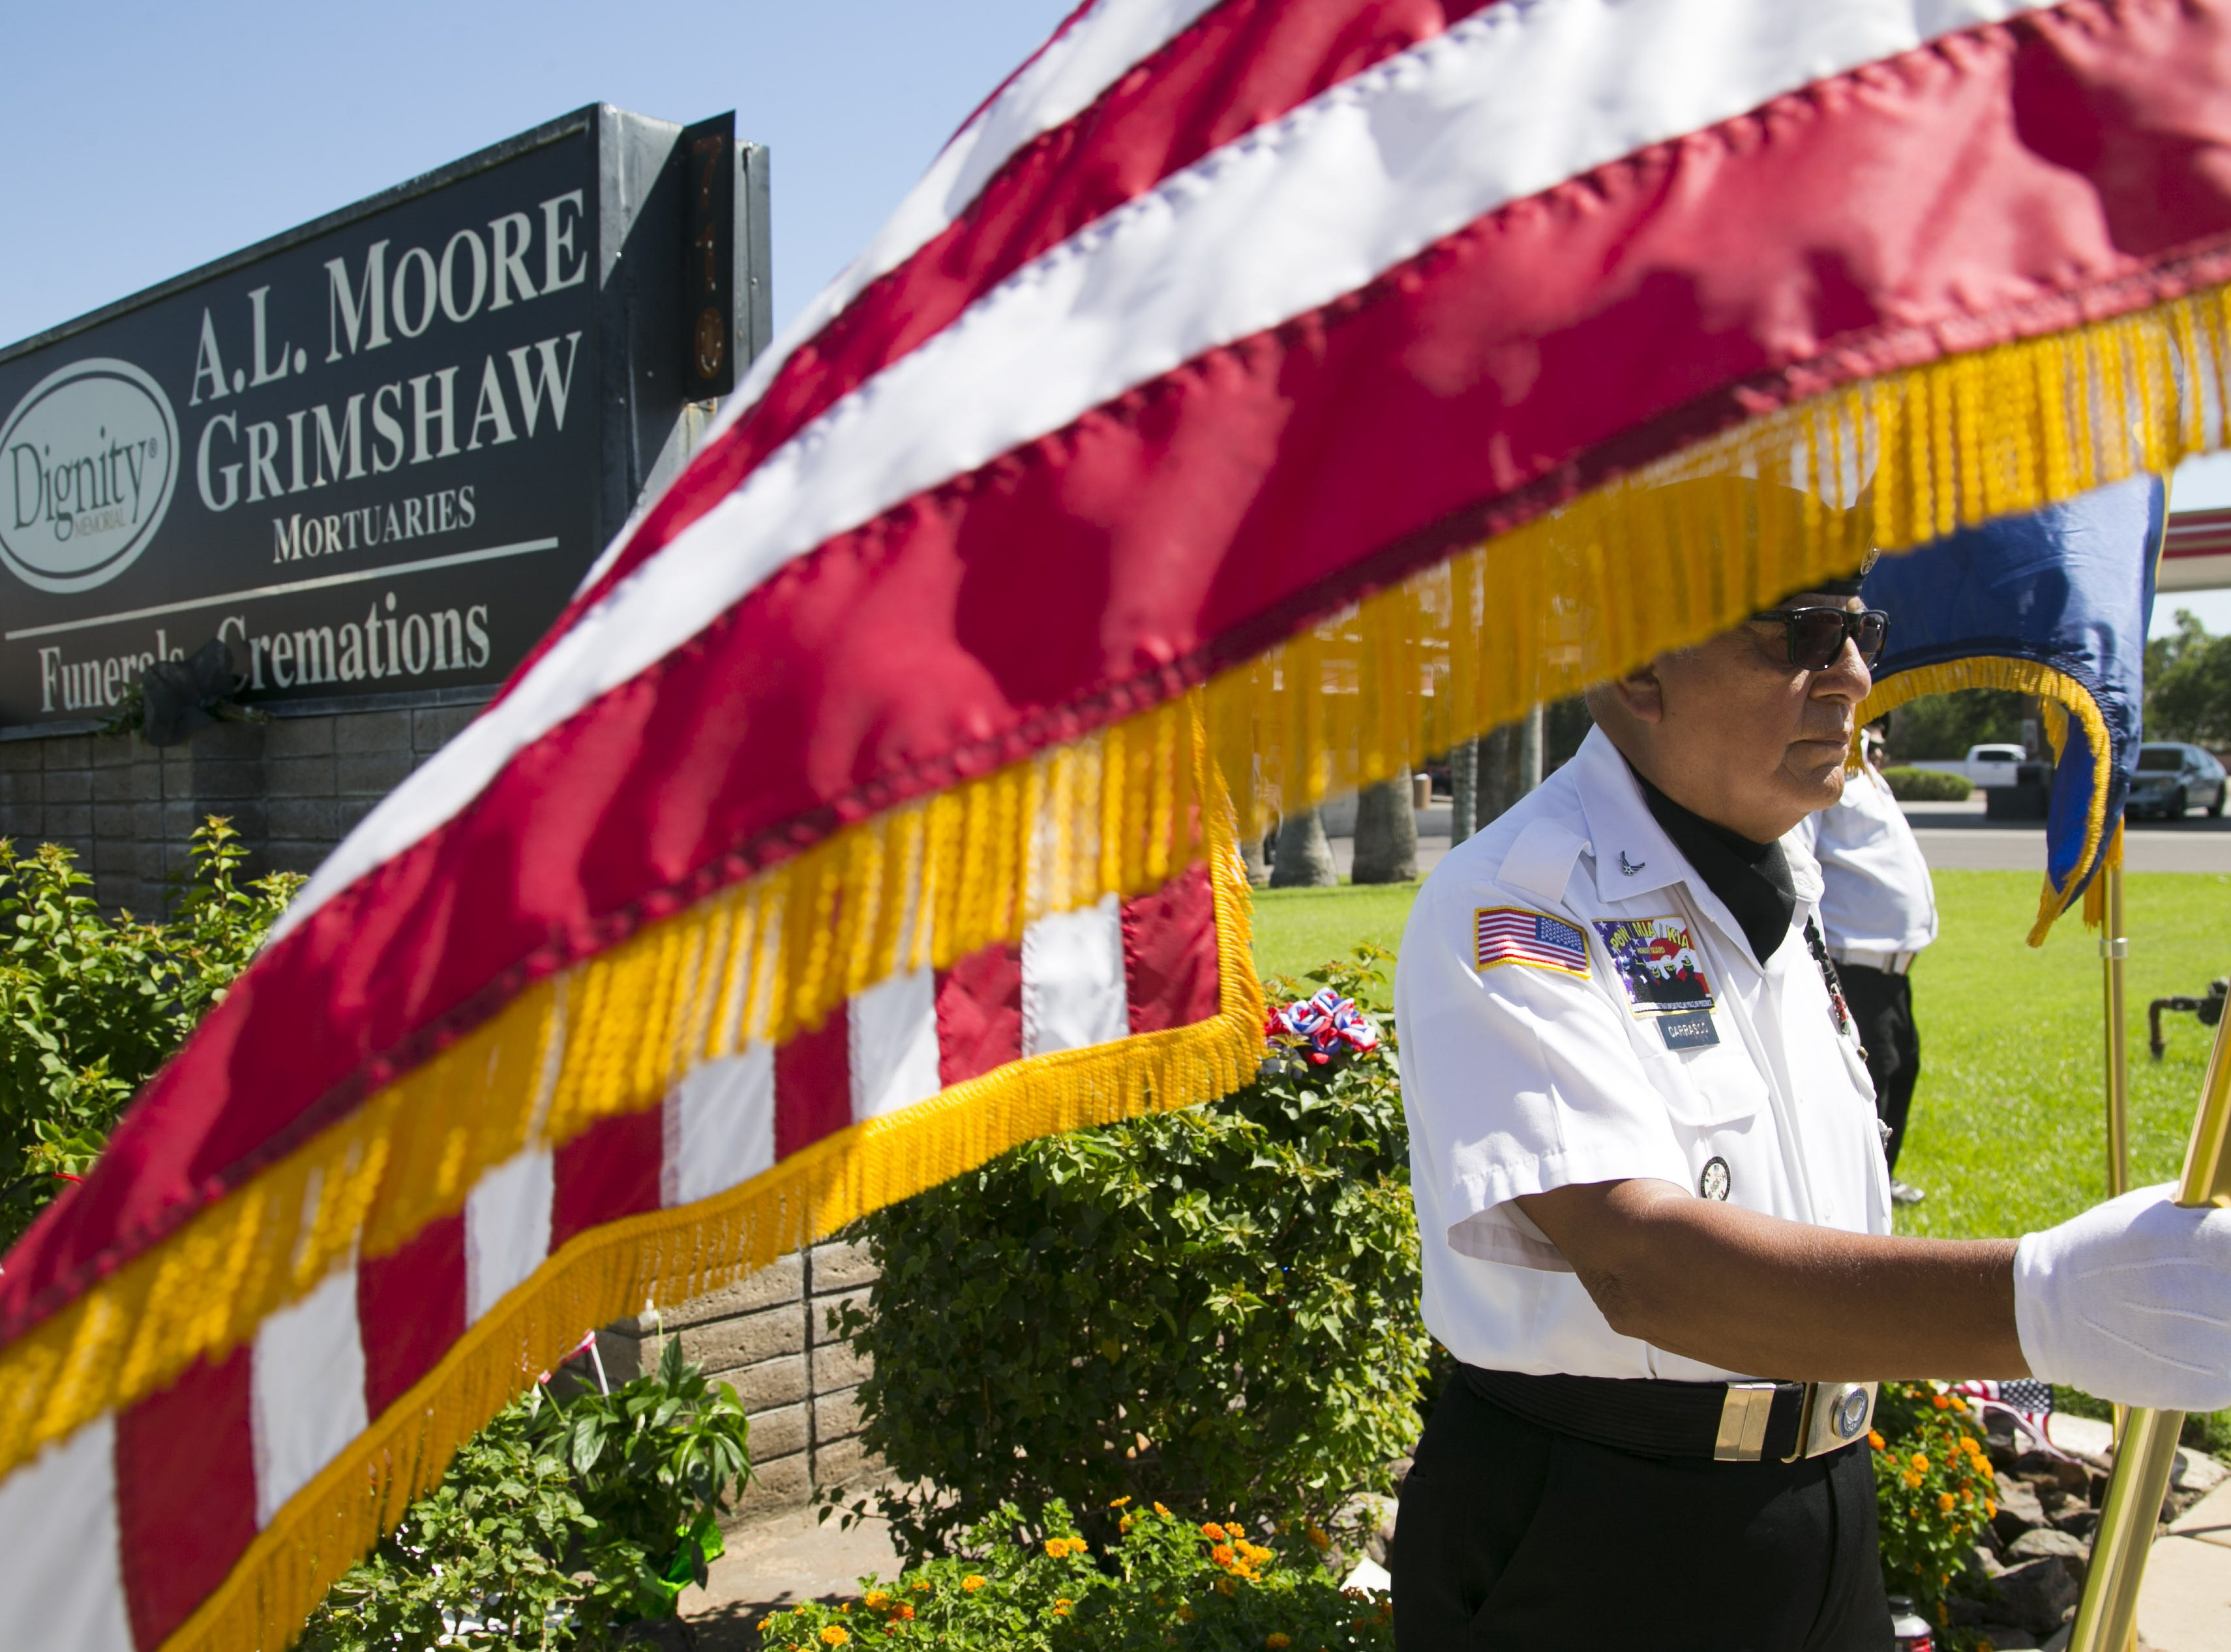 David Carrasco, the Commander of the POW MIA KIA Honor Guard, stands guard by a memorial for Sen. John McCain at A.L. Moore-Grimshaw Mortuaries in Phoenix, on Aug. 27, 2018.